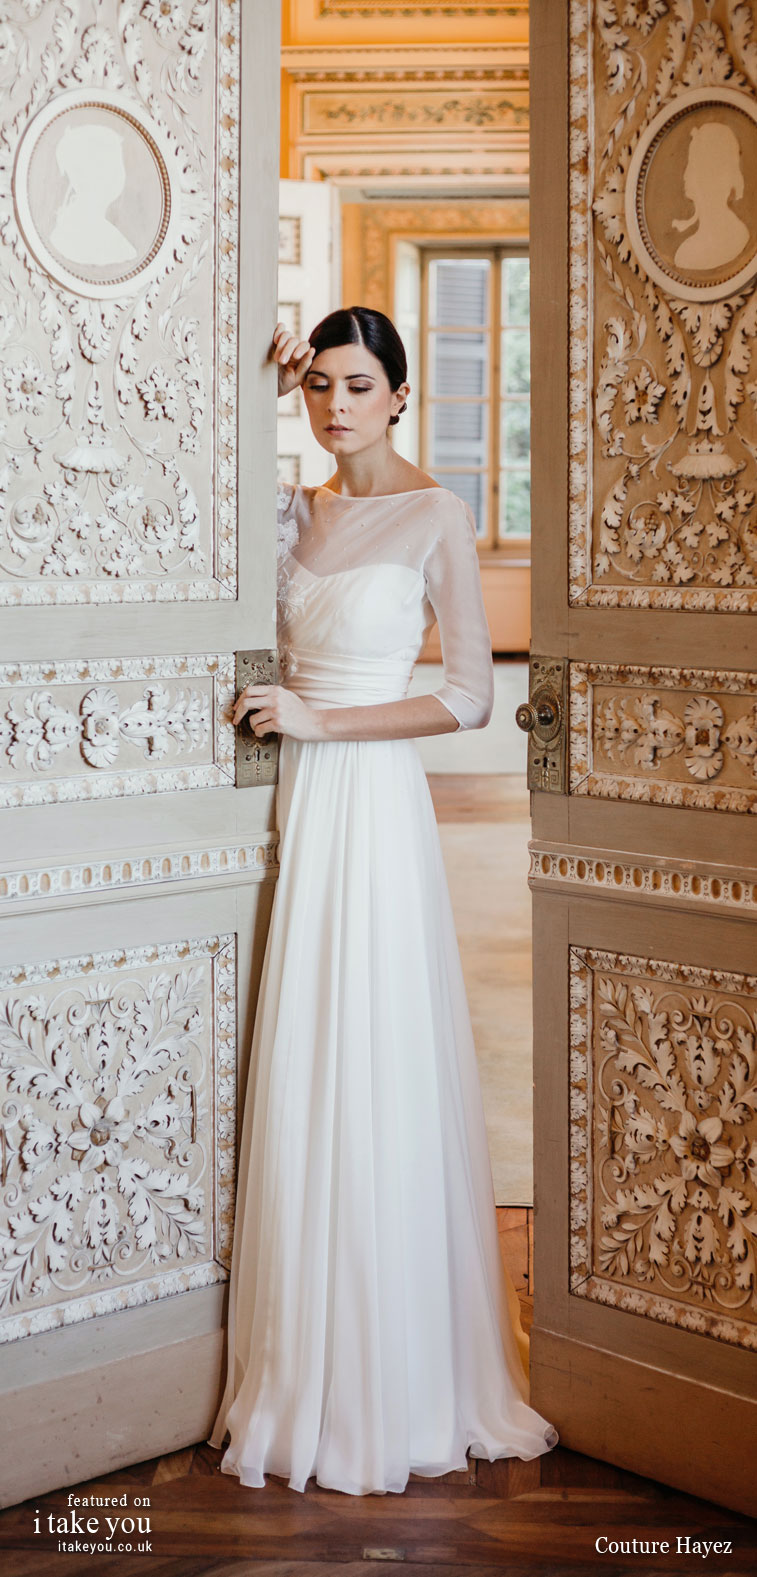 Couture Hayez 2020 bridal collection - long sleeve embellished bodice a line wedding dress #weddingdress #weddinggown #wedding #fashion #bridedress #bride #bridal #weddings #weddingdresses